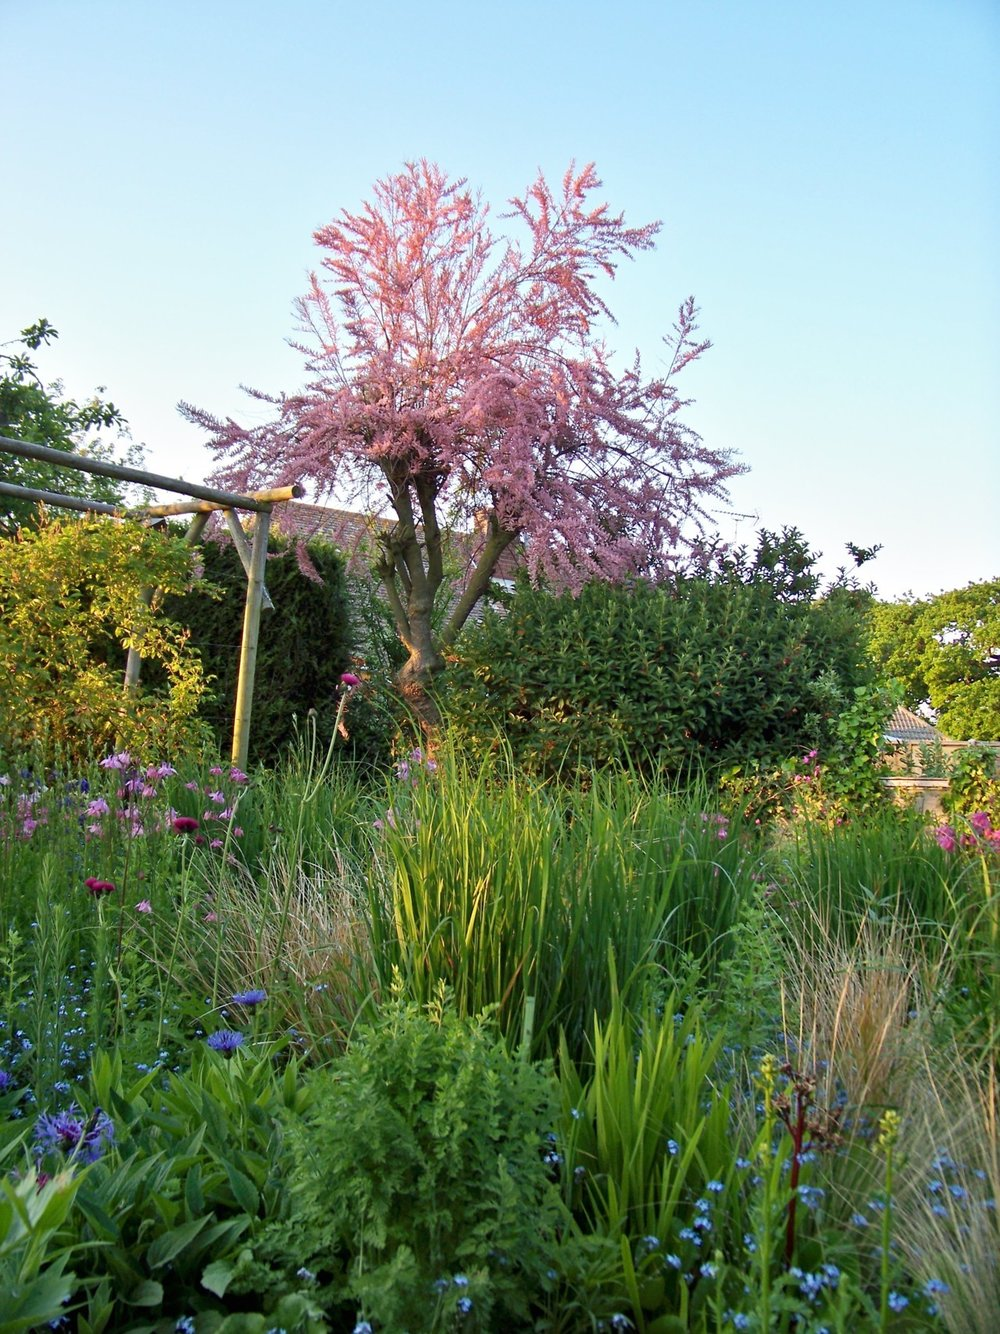 27th May 2012. Working in the garden on Sunday evening; sun going down at the end of a weekend of perfect weather.